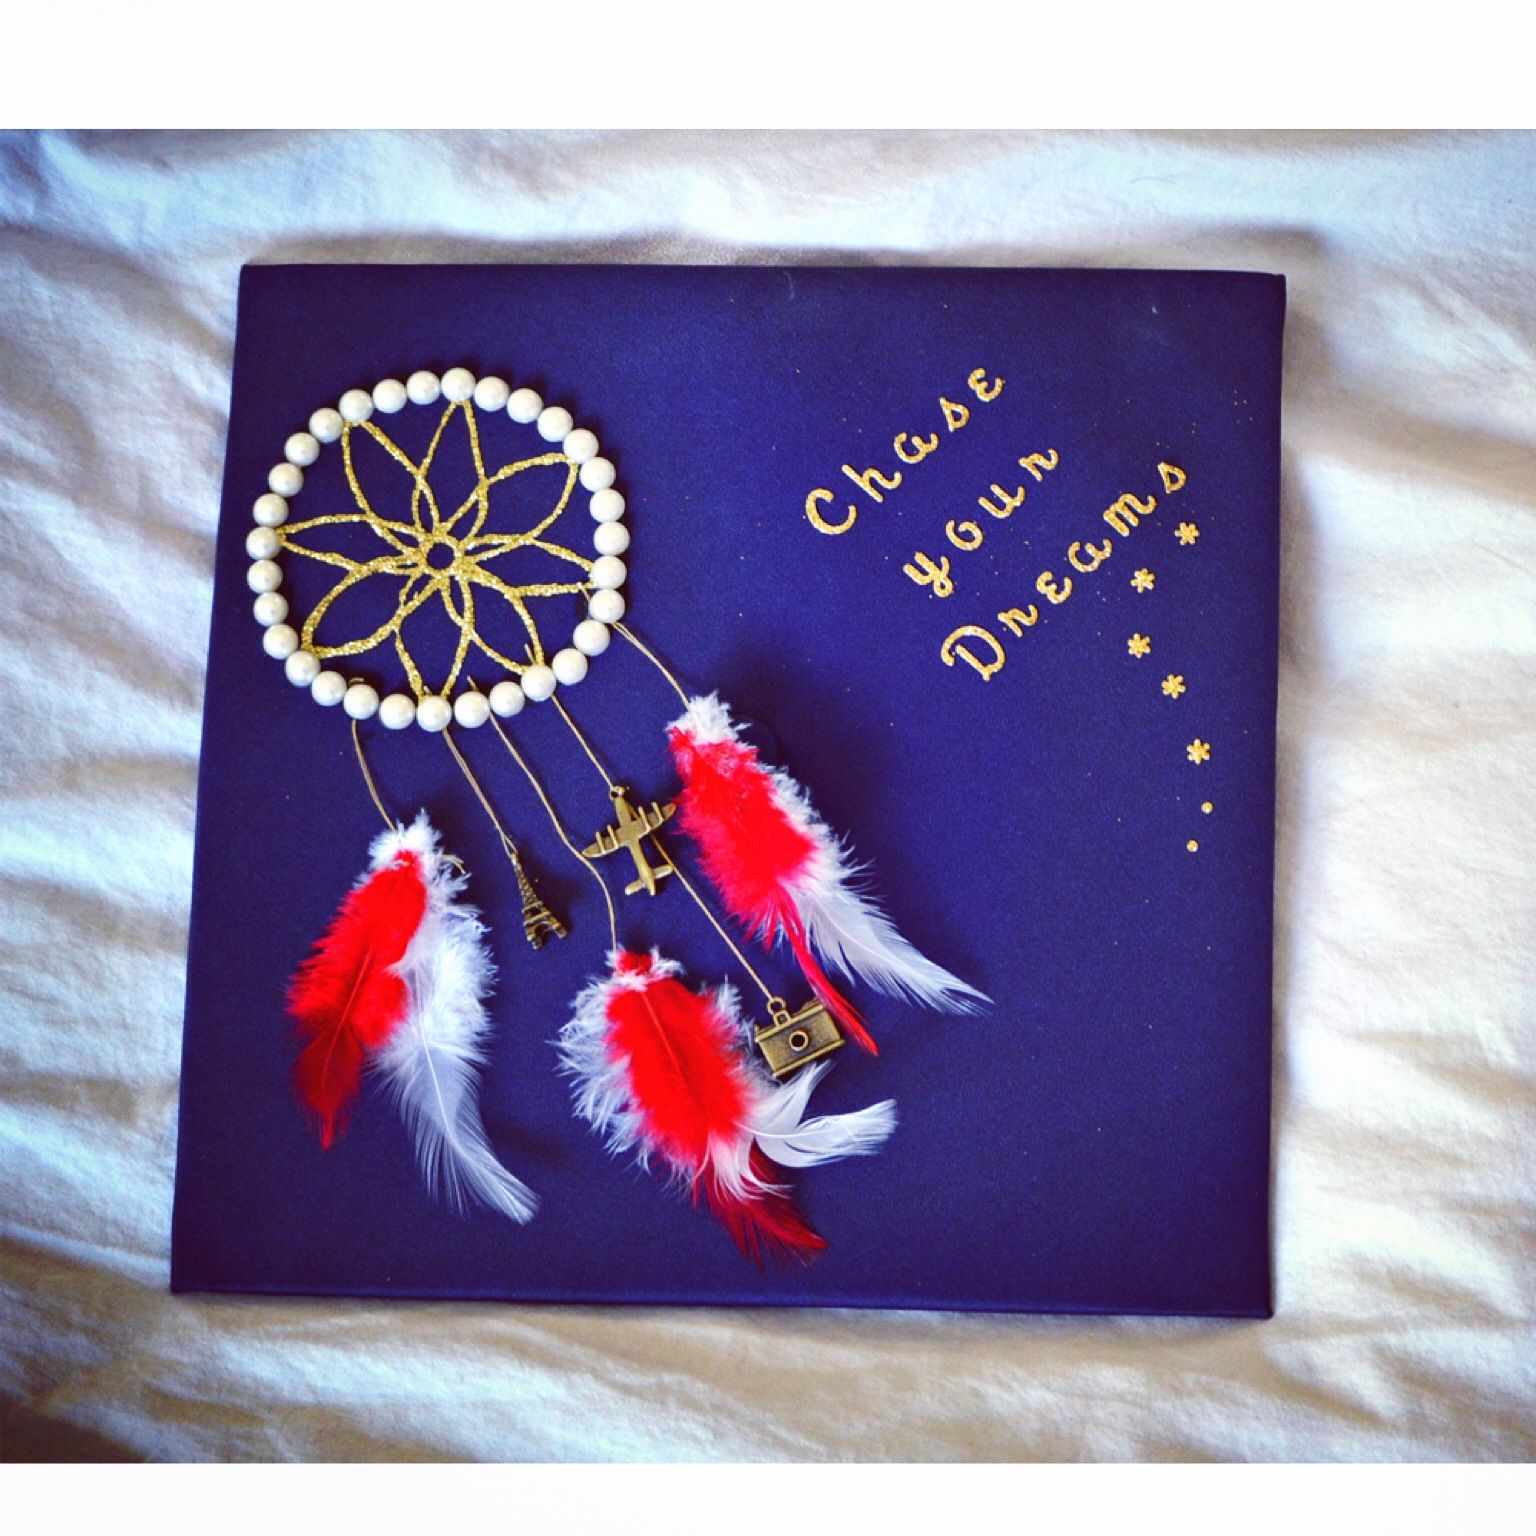 Made my own dreamcatcher graduation cap The charms represent my